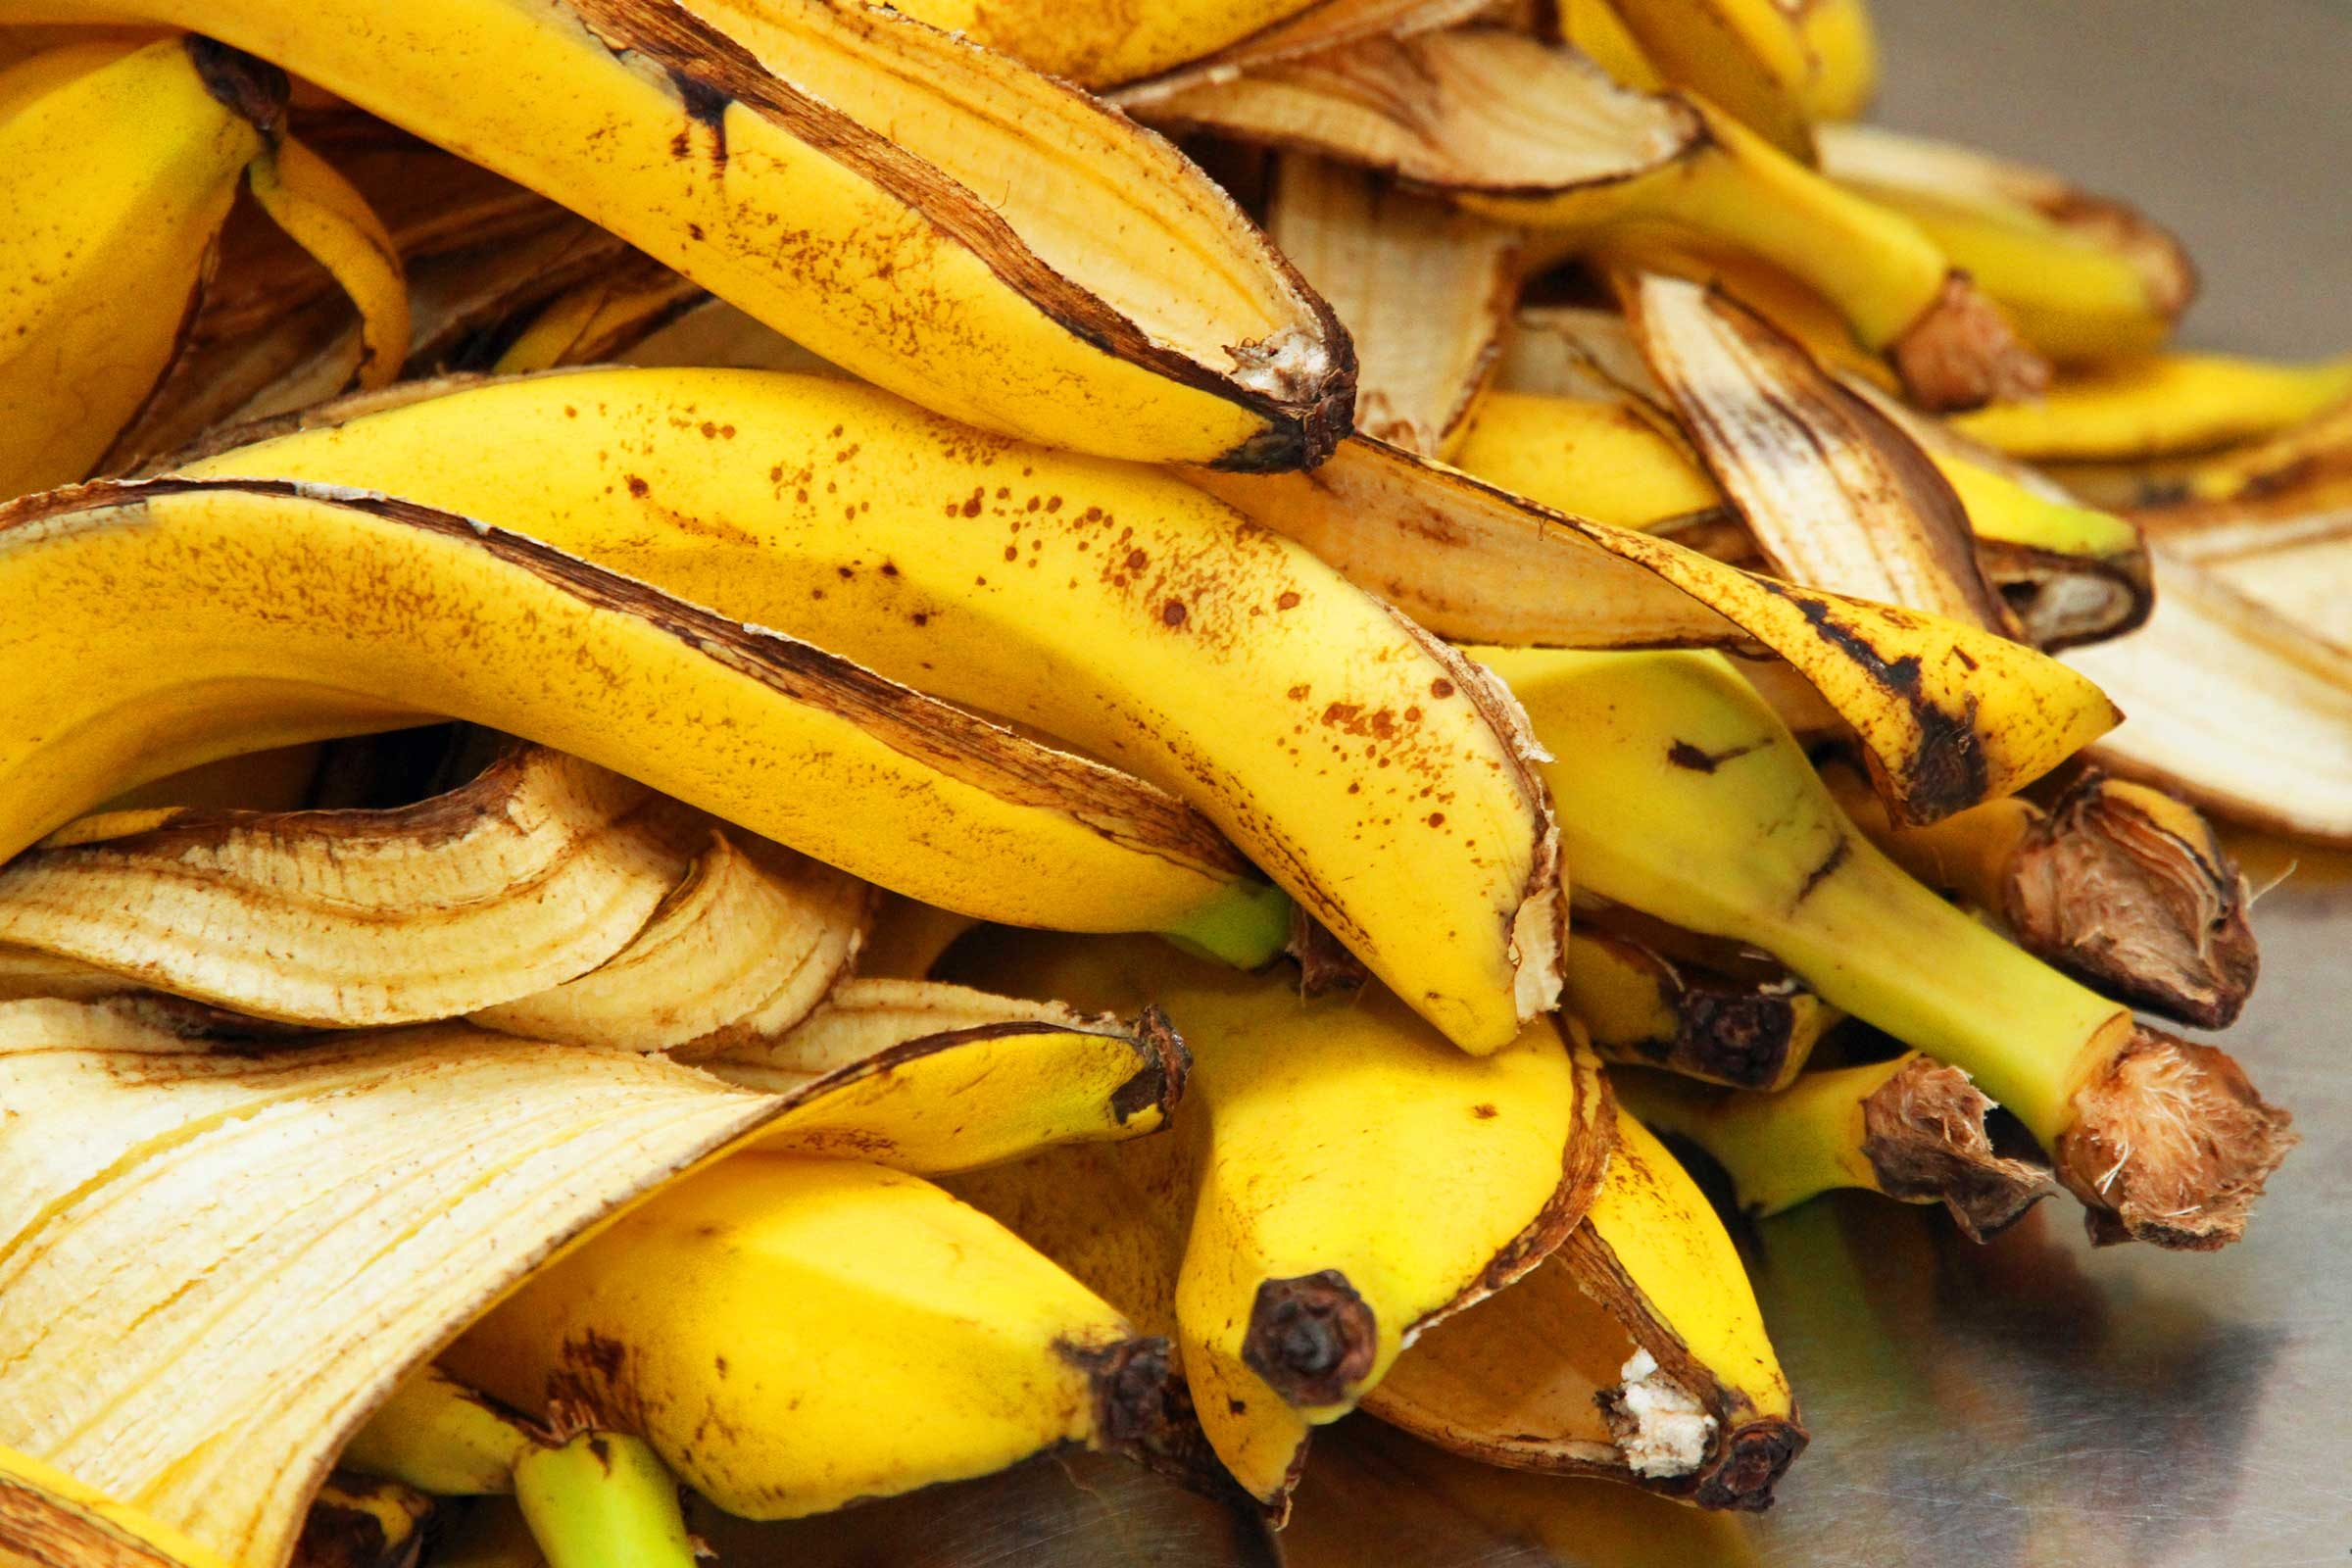 Feb 15, · Banana flour has a higher starch content - which means you can use less flour overall. The rule of thumb is to use 25% less banana flour than the suggested flour in any recipe. Try substituting banana flour in a brownie recipe for a much healthier version of the dessert/5(8).